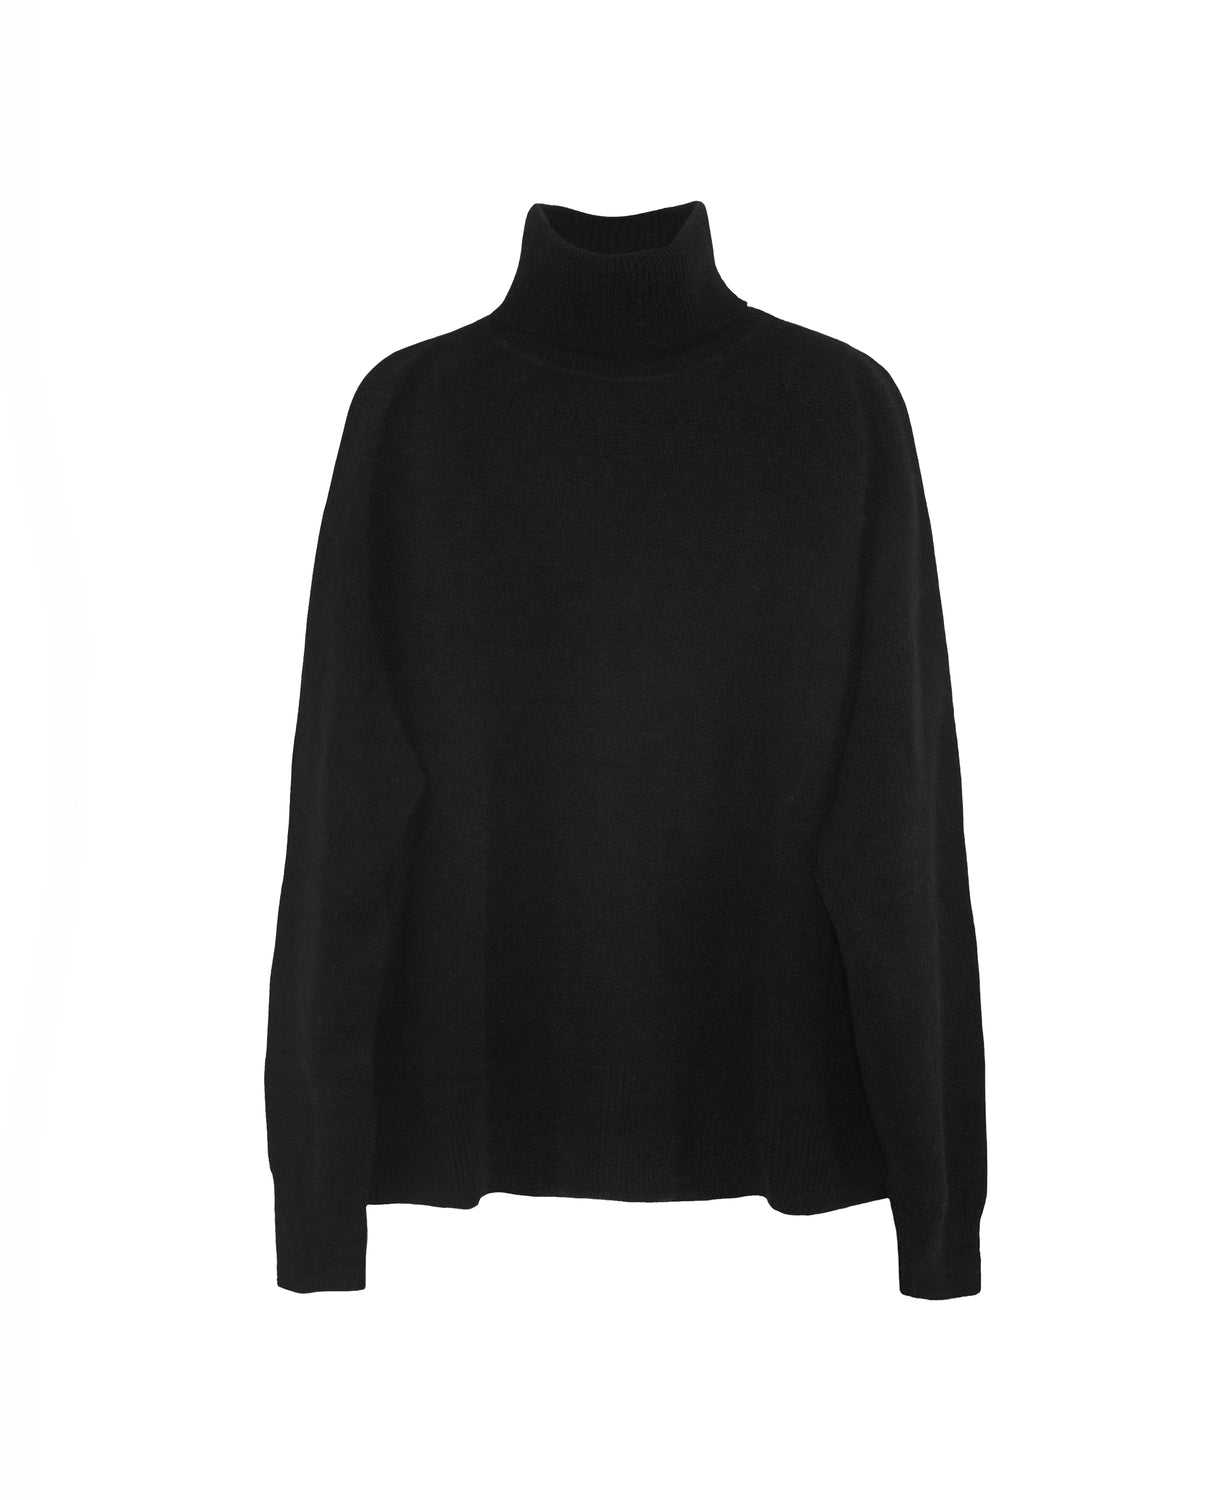 Beautiful chic airy fit cashmere turtleneck in black